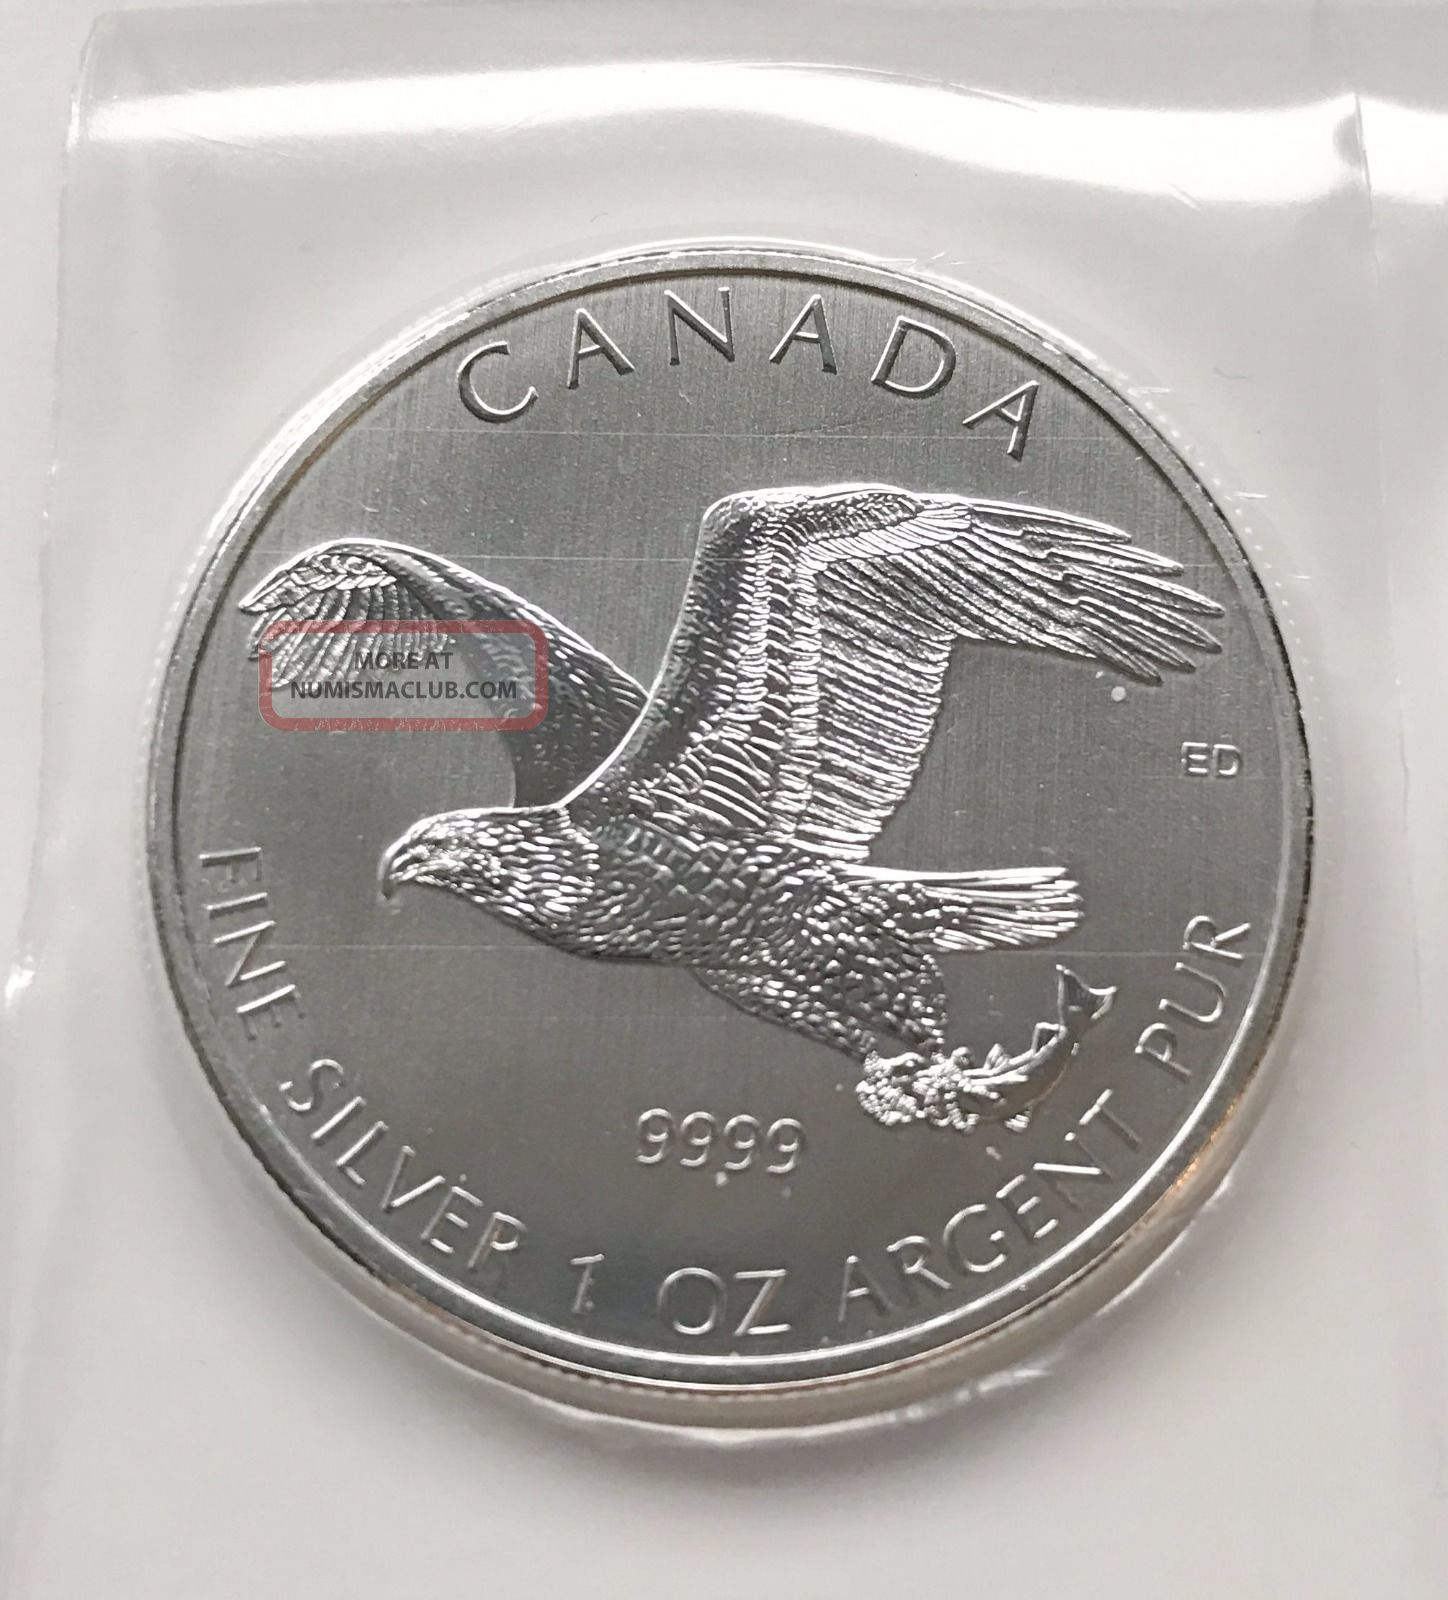 2014 Birds Of Prey Series Bald Eagle In Flex - 1 Oz Silver Coin.  9999 Silver photo